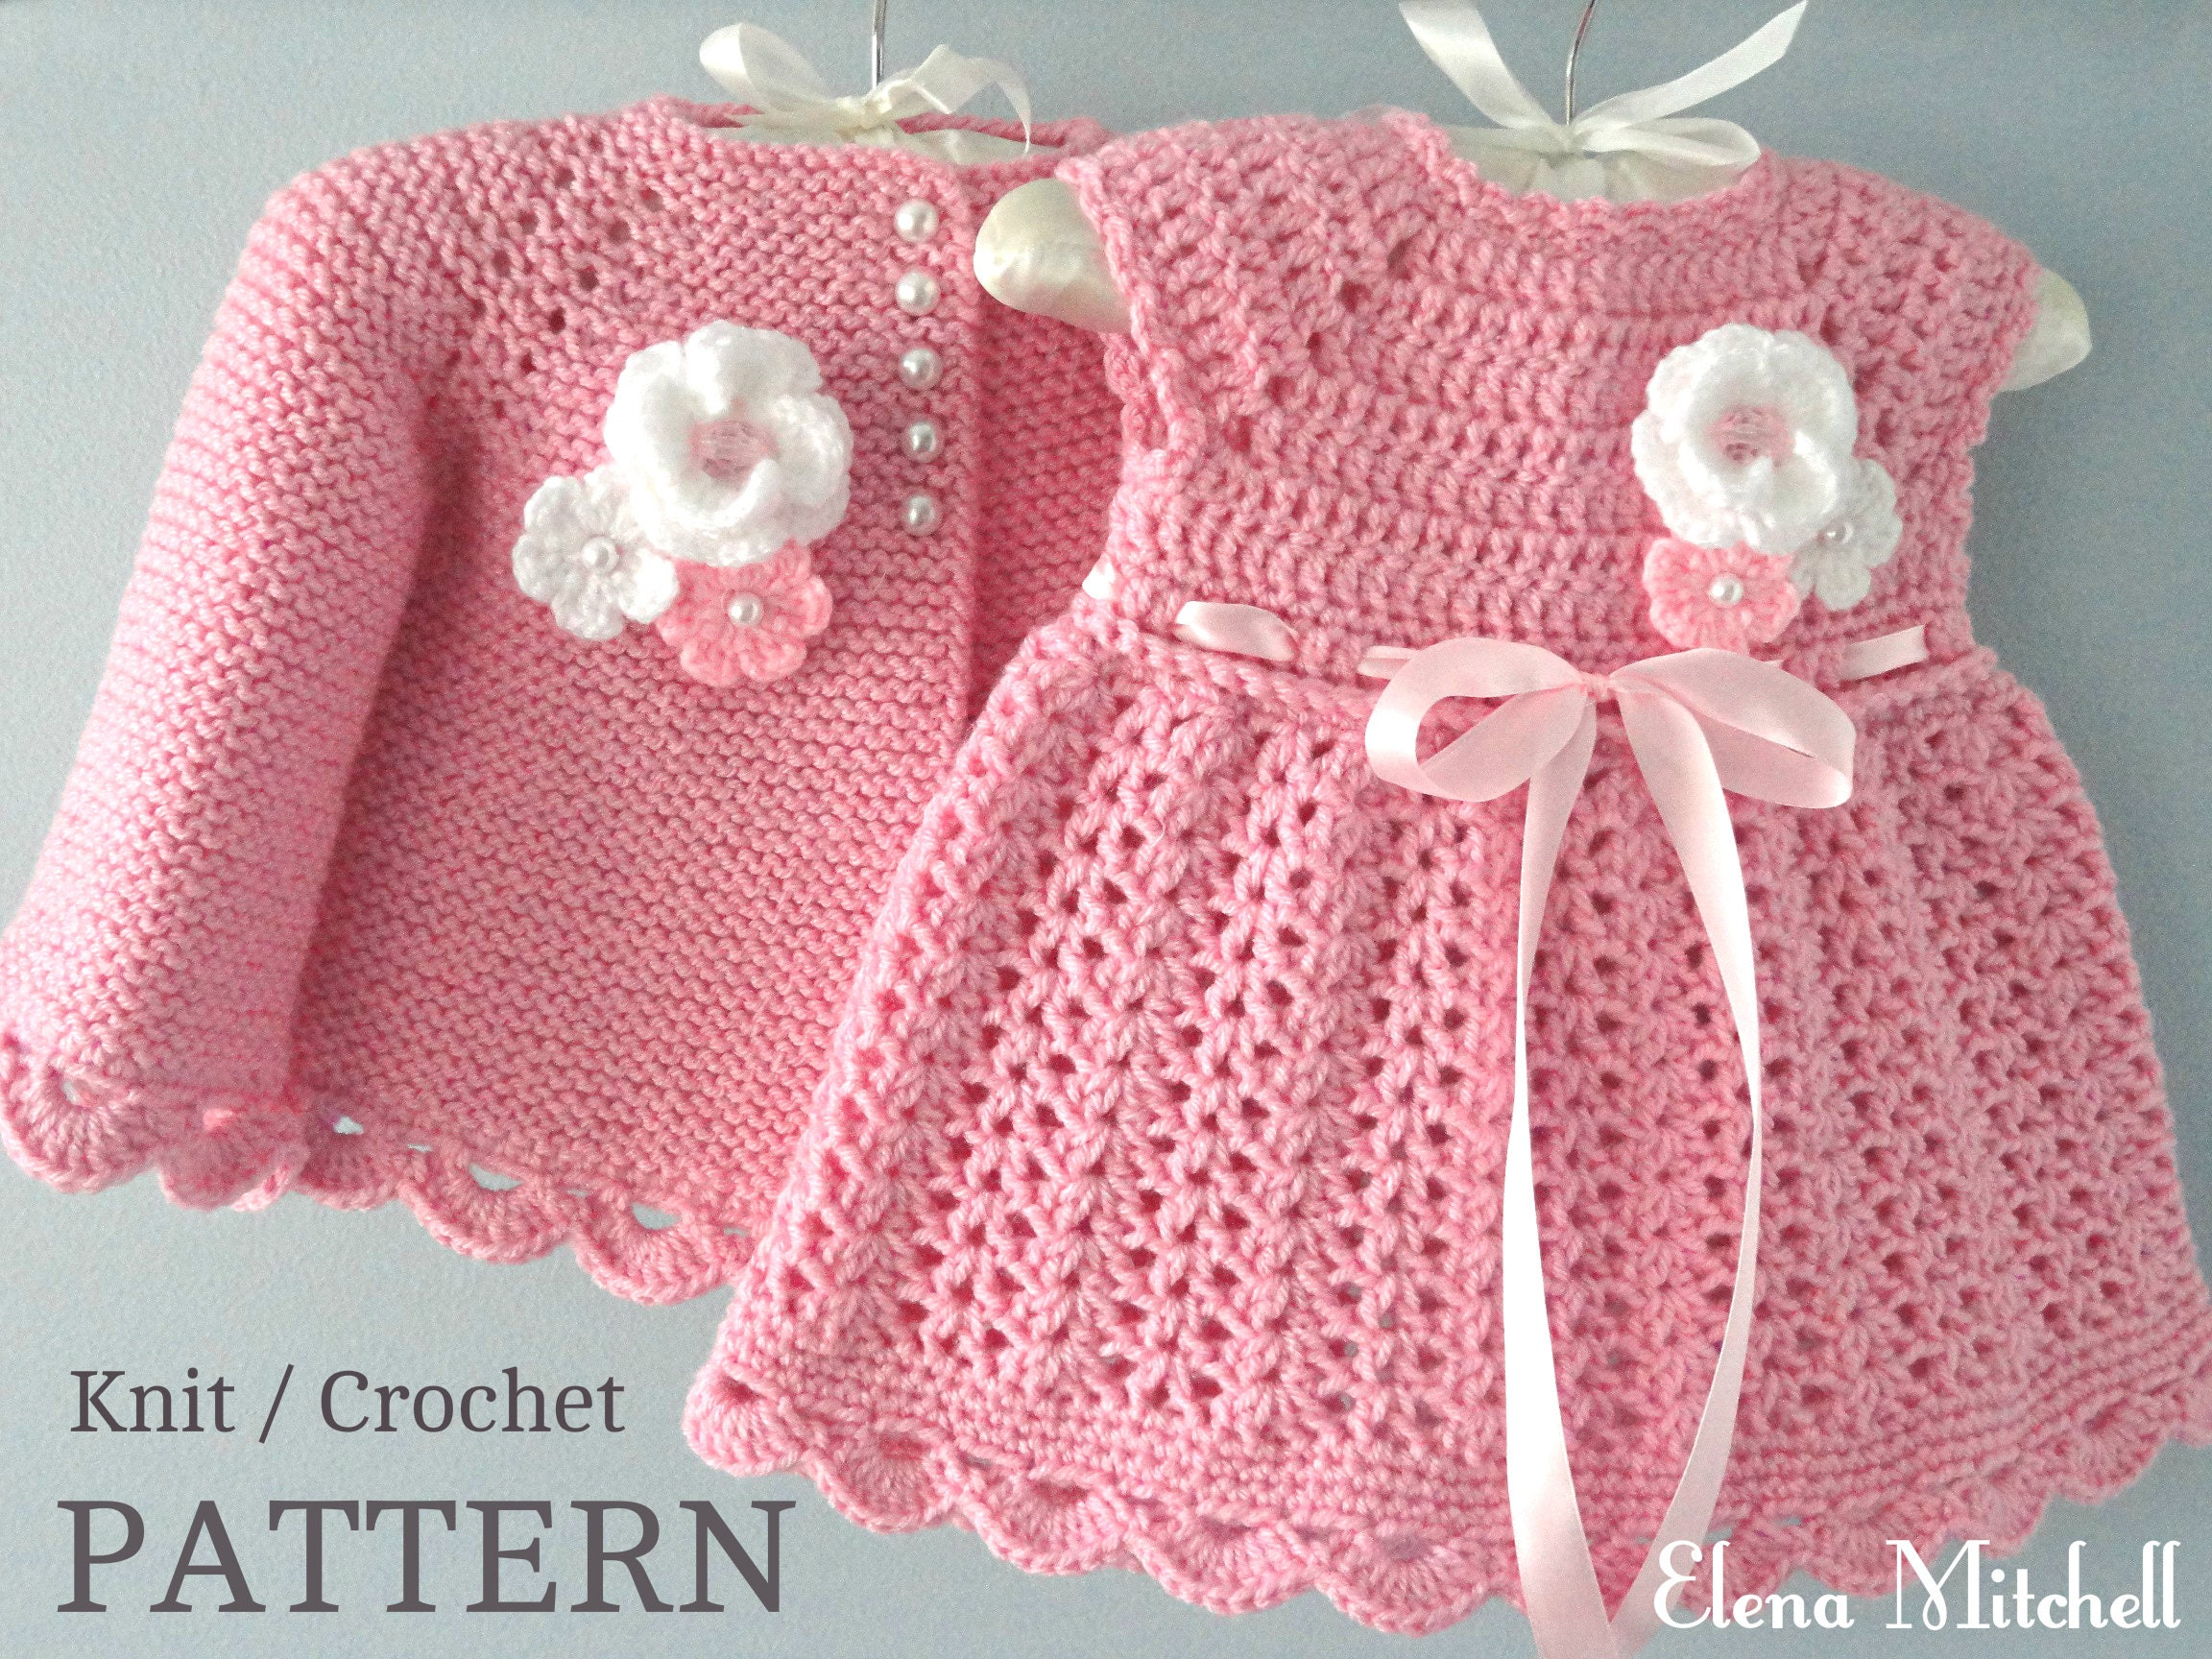 Knitting PATTERN Baby Jacket Crochet PATTERN Baby Dress Baby ...